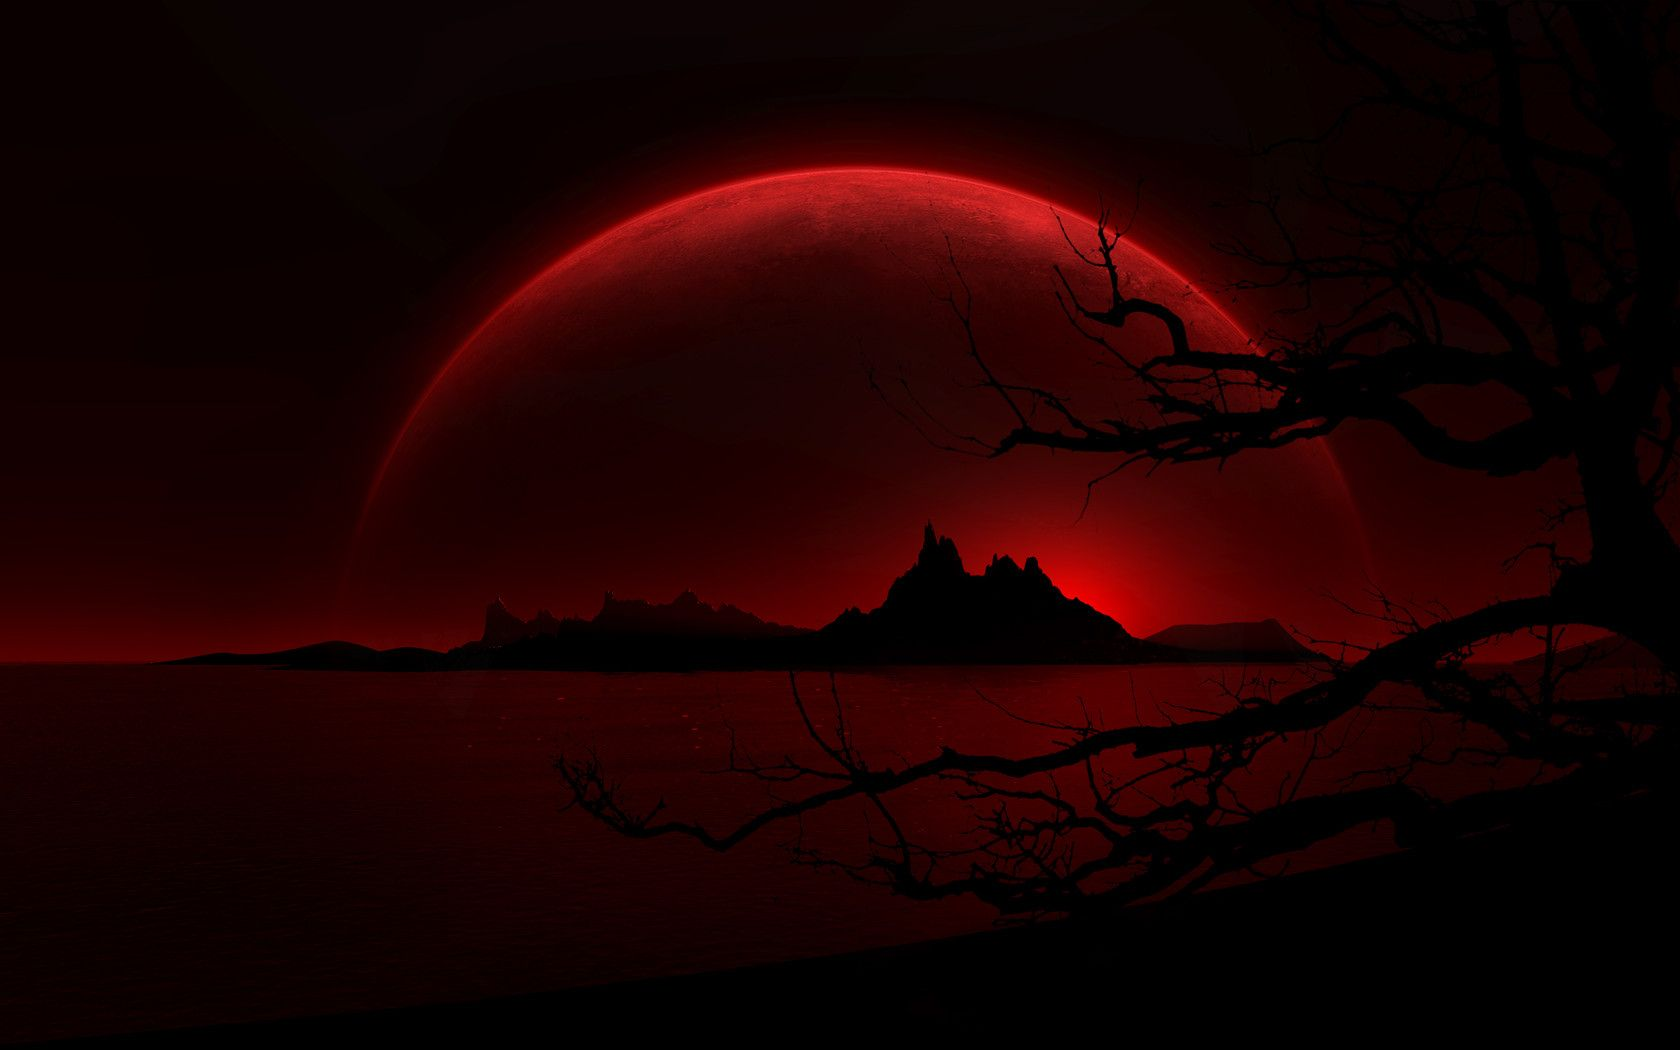 A Beautifull Wallpaper Dump Now With A Narrator Dark Red Wallpaper Red And Black Wallpaper Hd Dark Wallpapers